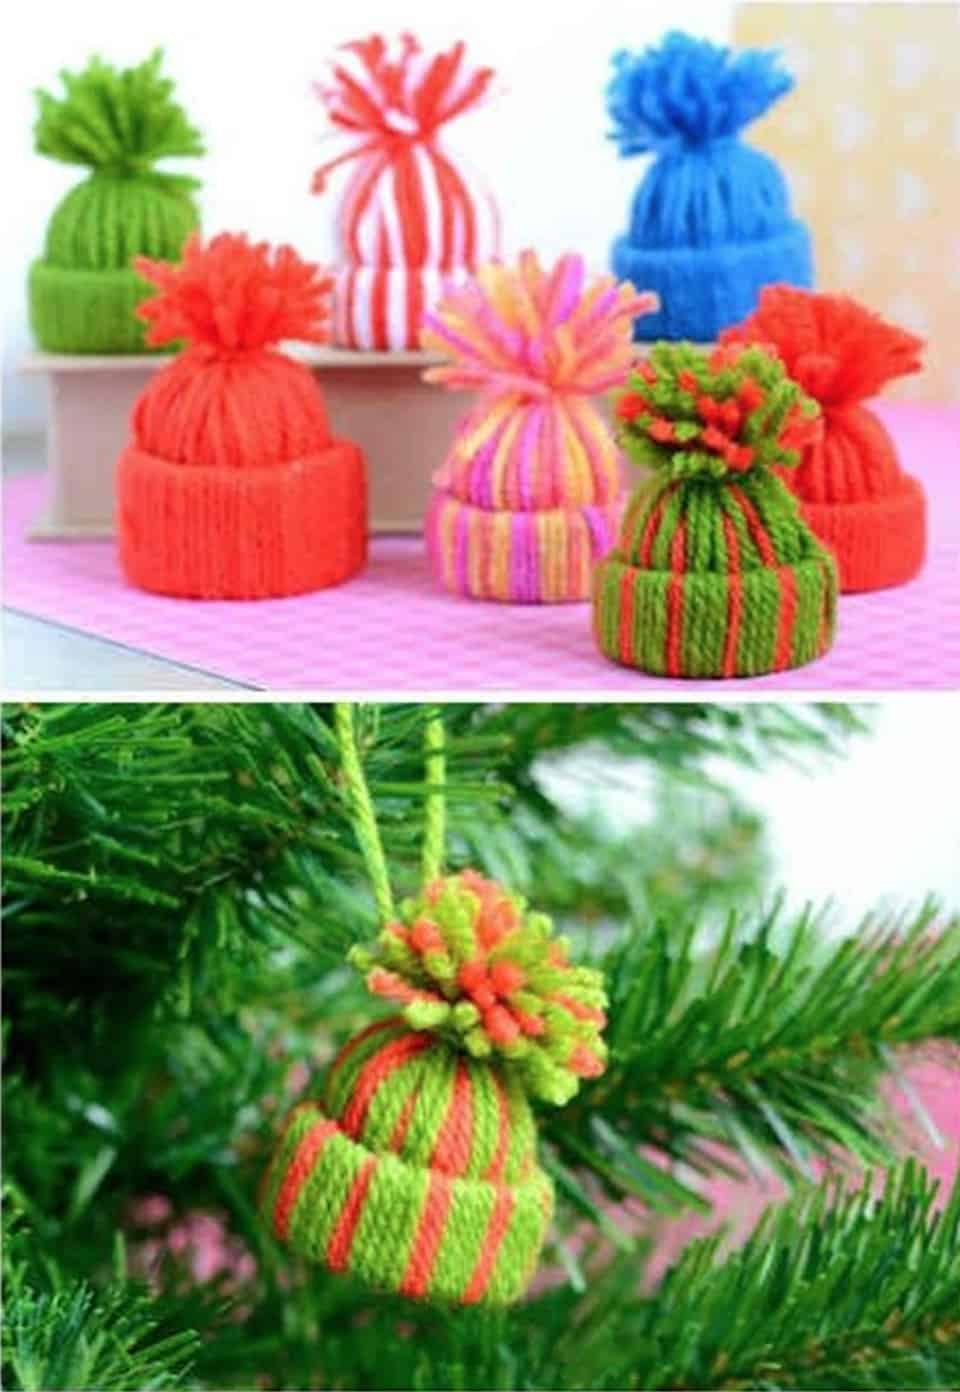 Mini yarn hat ornaments